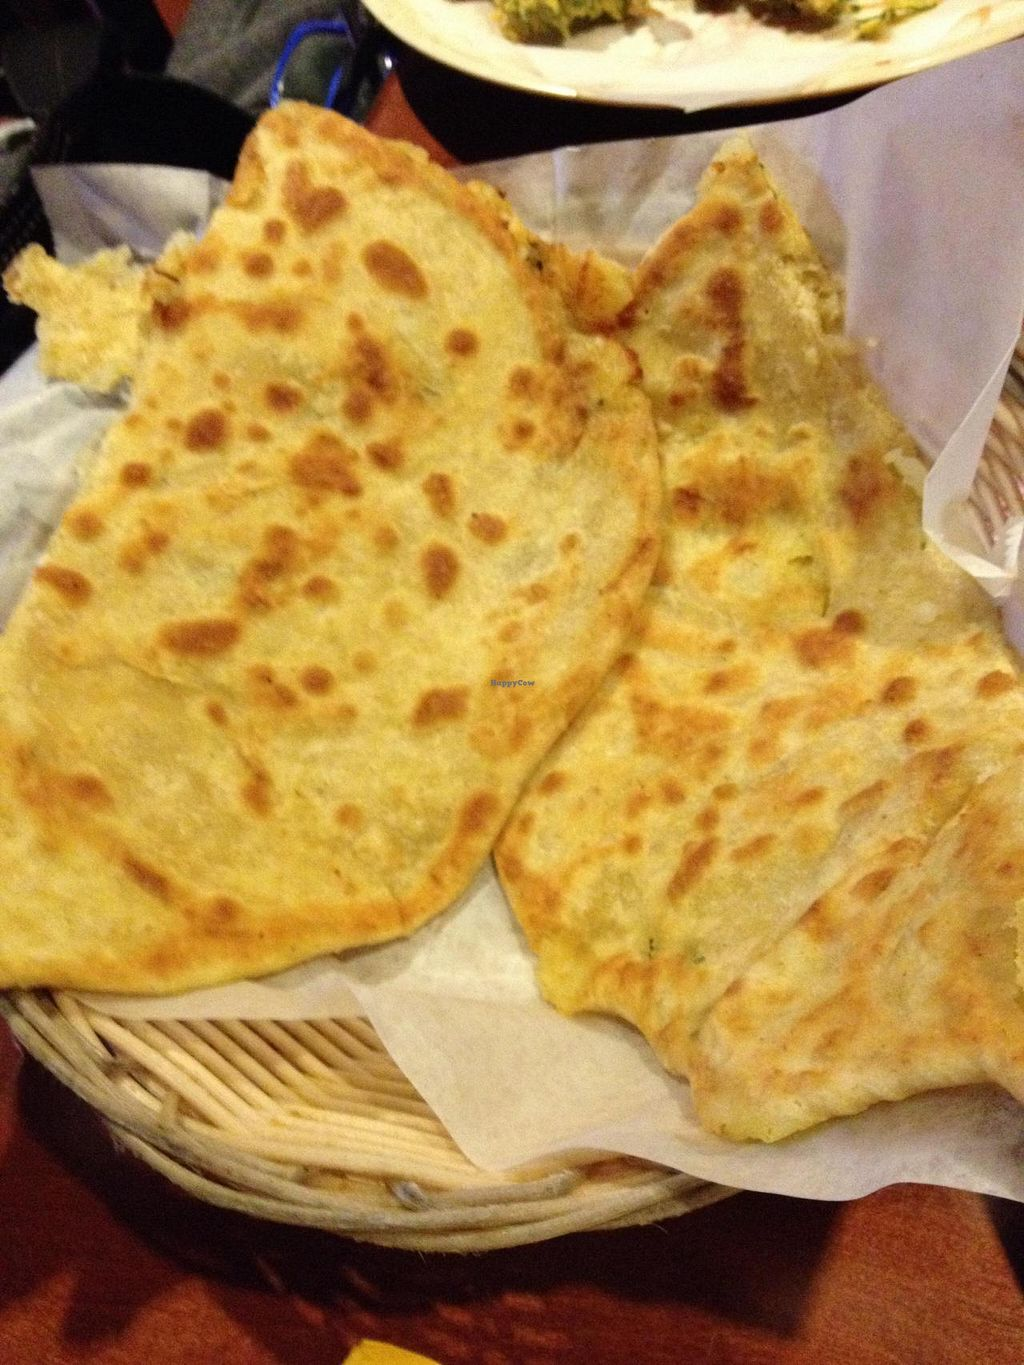 "Photo of Karaikudi Palace  by <a href=""/members/profile/Tigra220"">Tigra220</a> <br/>Aloo Paratha (whole wheat bread stuffed with potatoes) <br/> August 31, 2014  - <a href='/contact/abuse/image/46801/78737'>Report</a>"